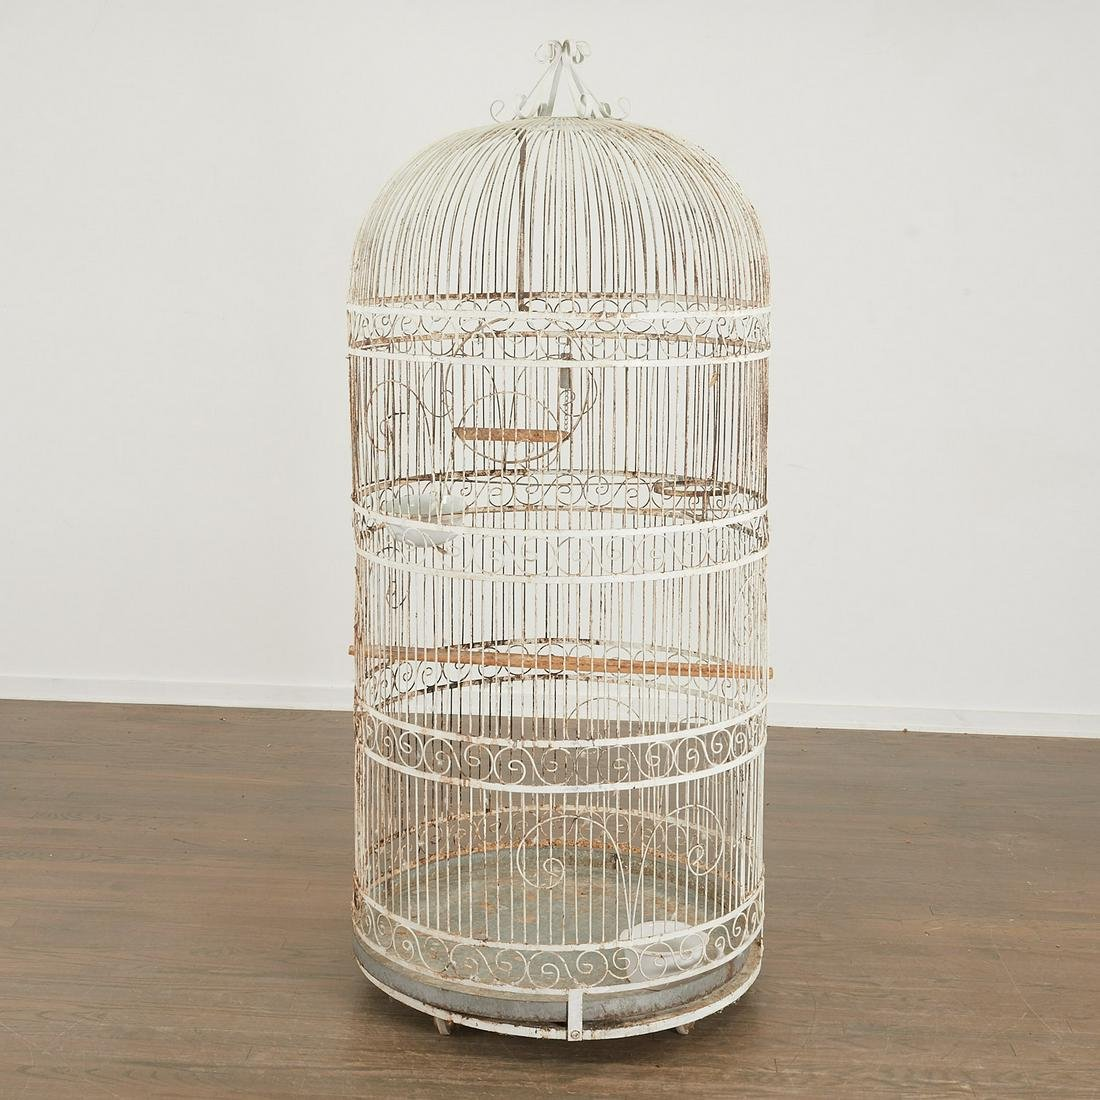 Monumental 72-inch French wire birdcage